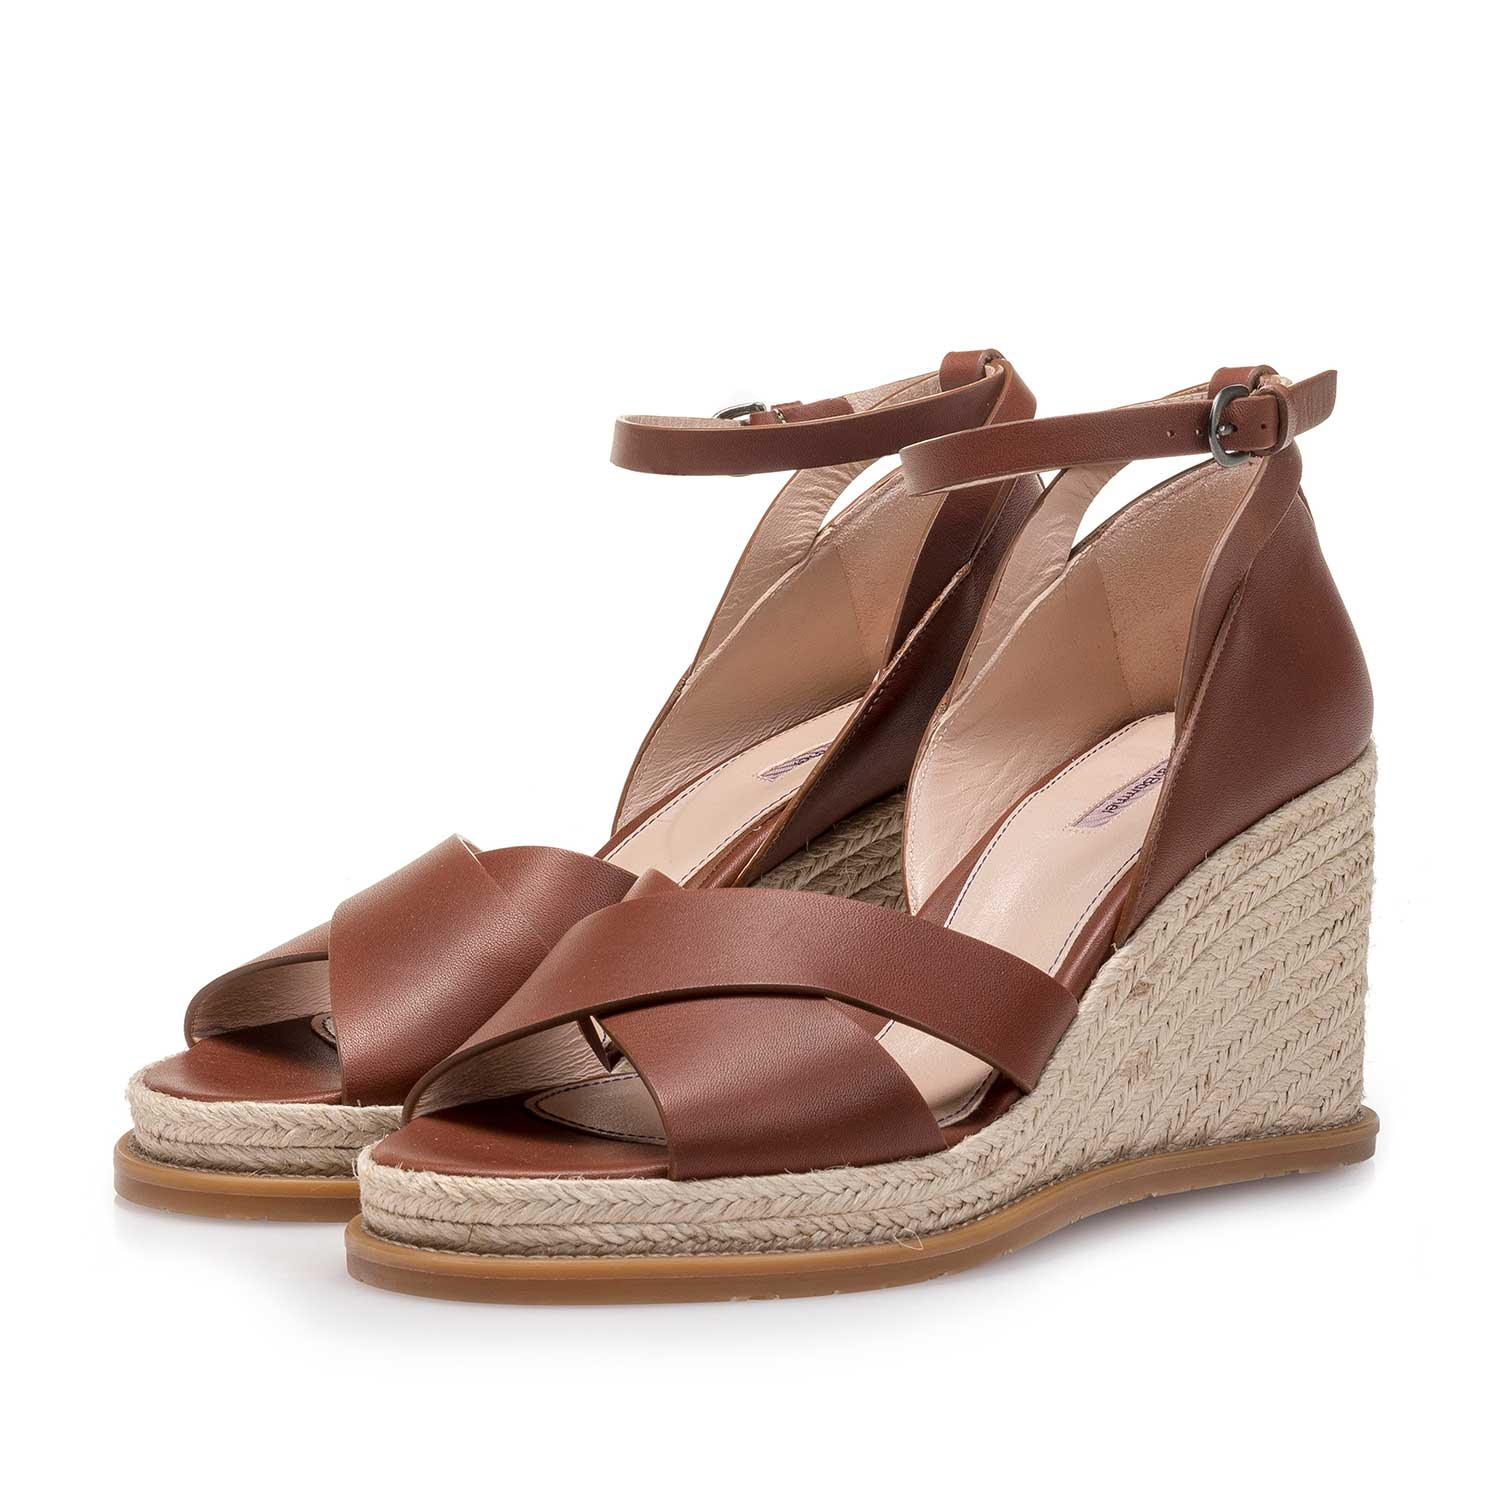 85915/06 - Cognac-coloured wedge-heel leather sandal